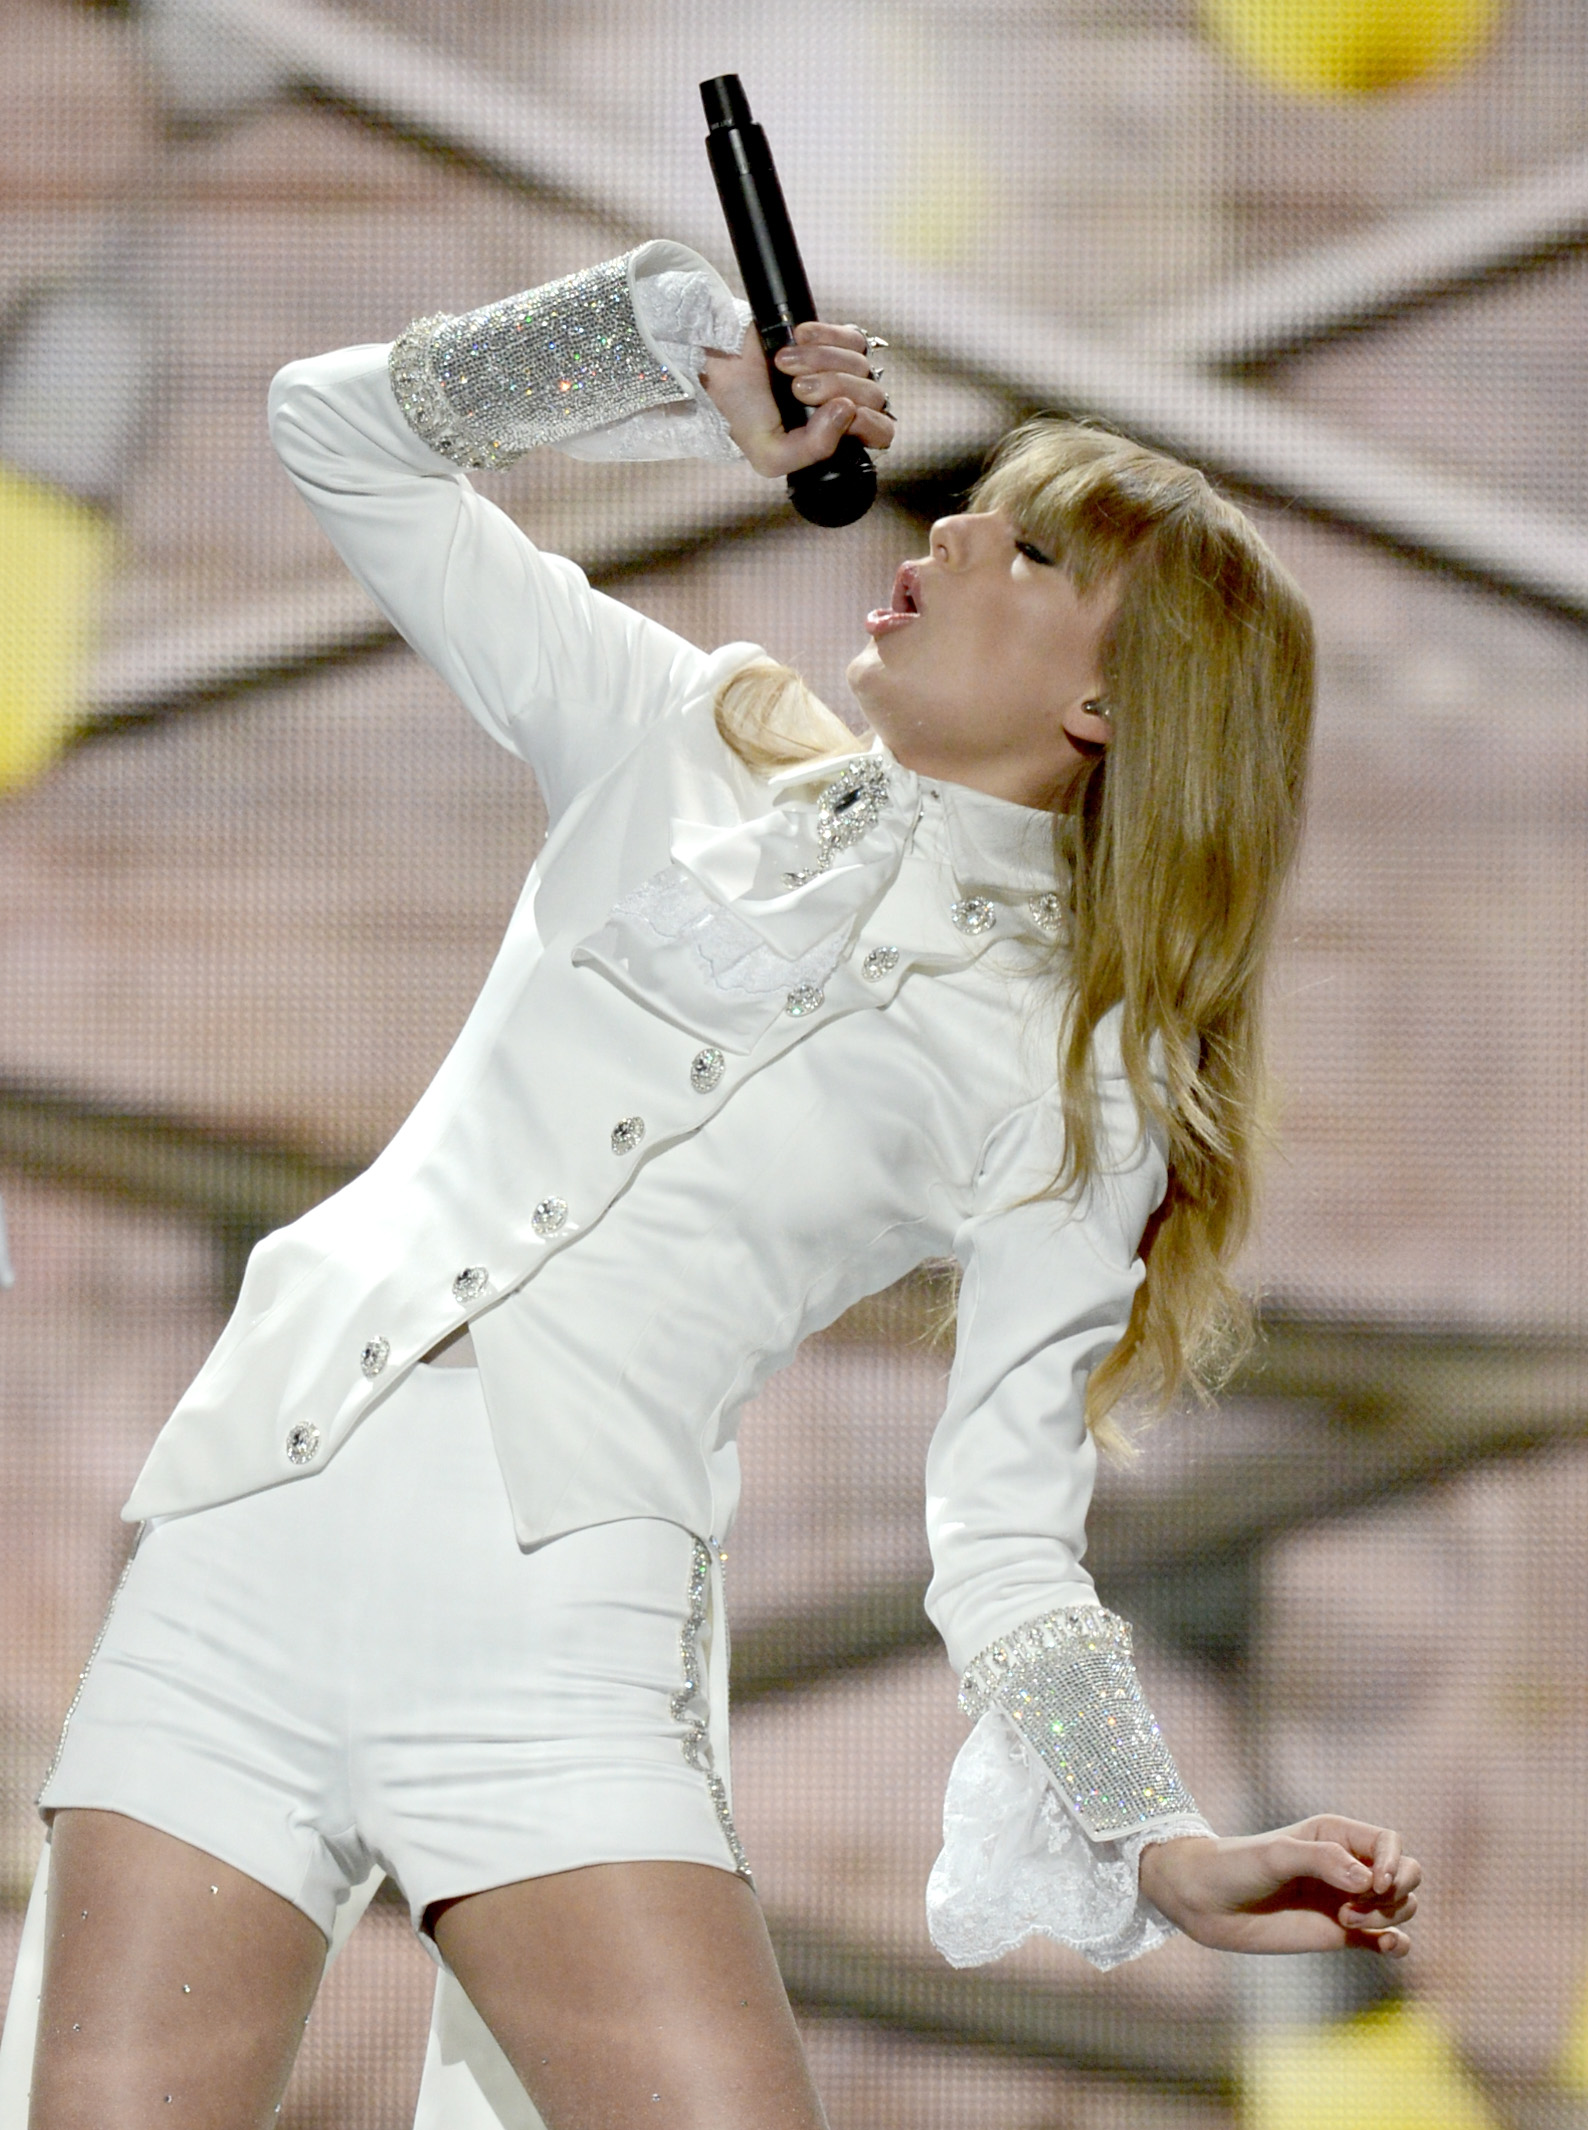 Taylor Swift opened the 2013 Grammys and belted it out on stage.